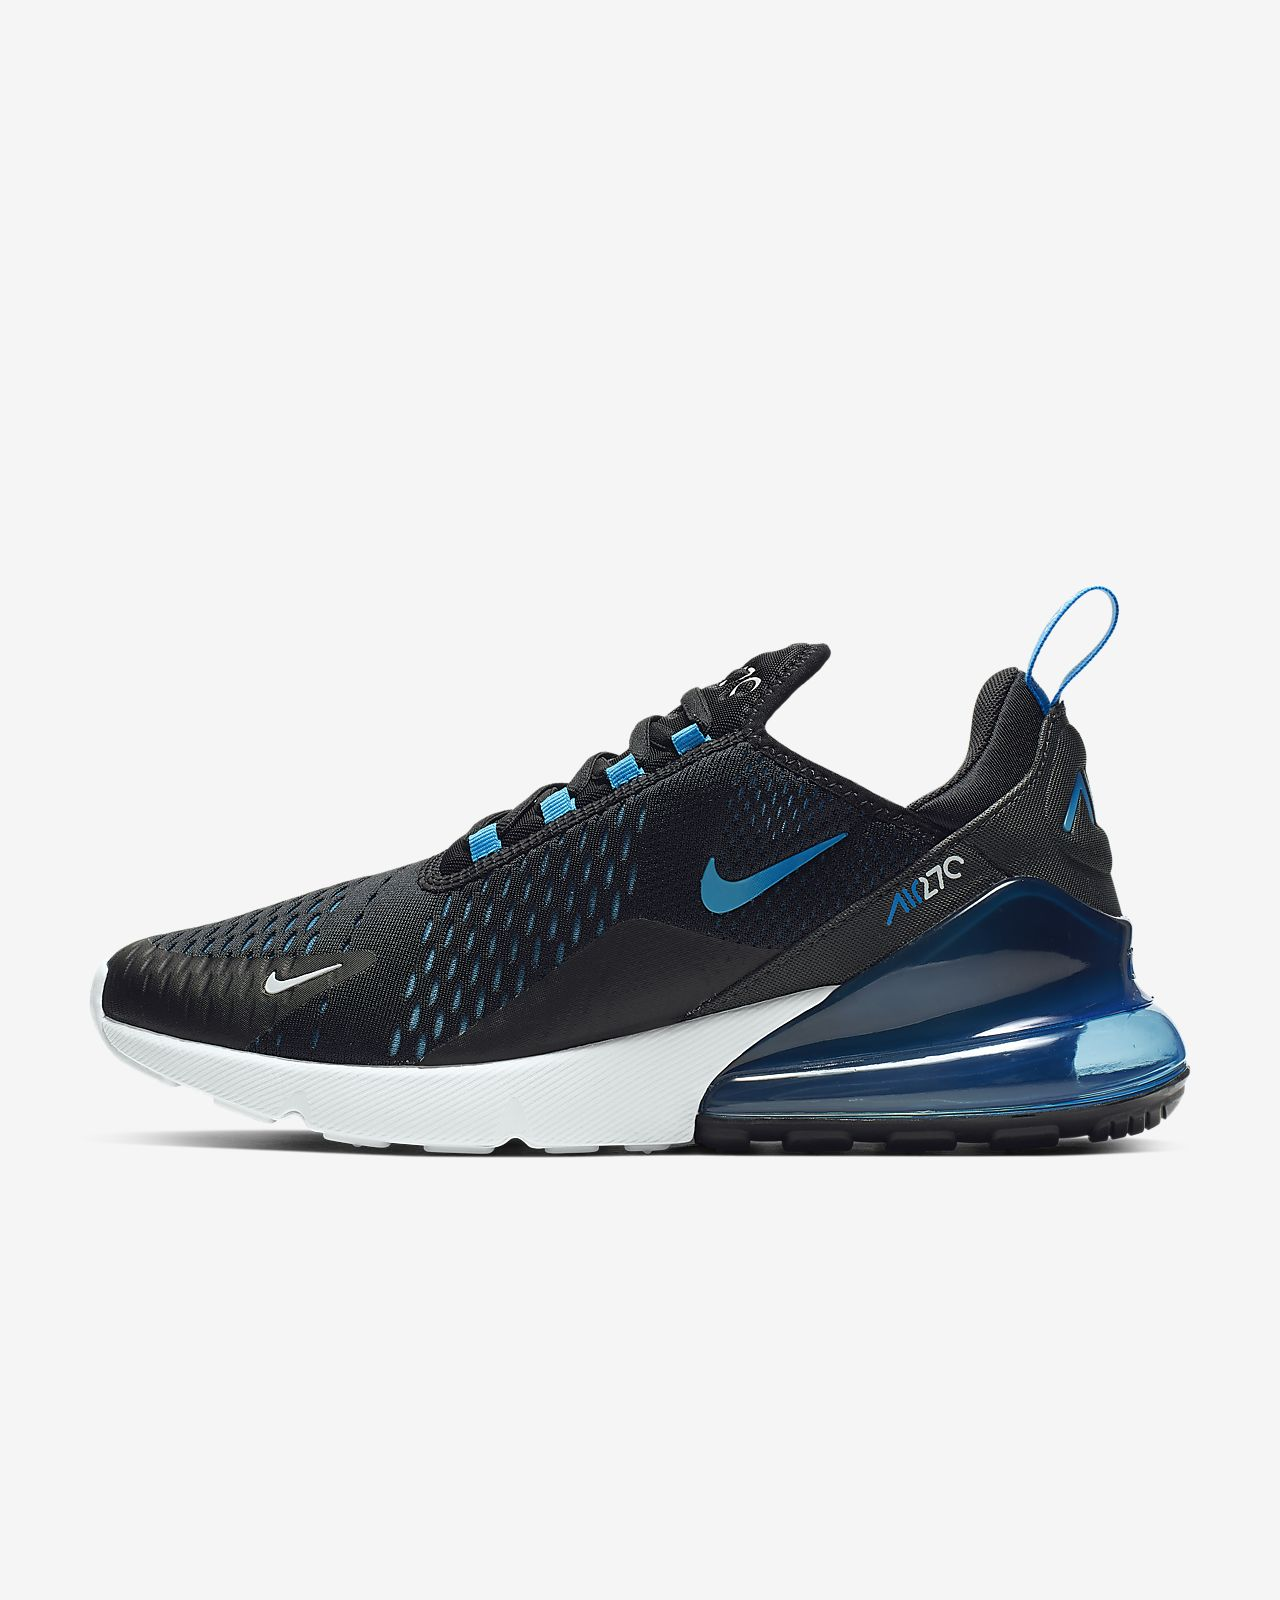 meet 52a85 37c52 Men s Shoe. Nike Air Max 270